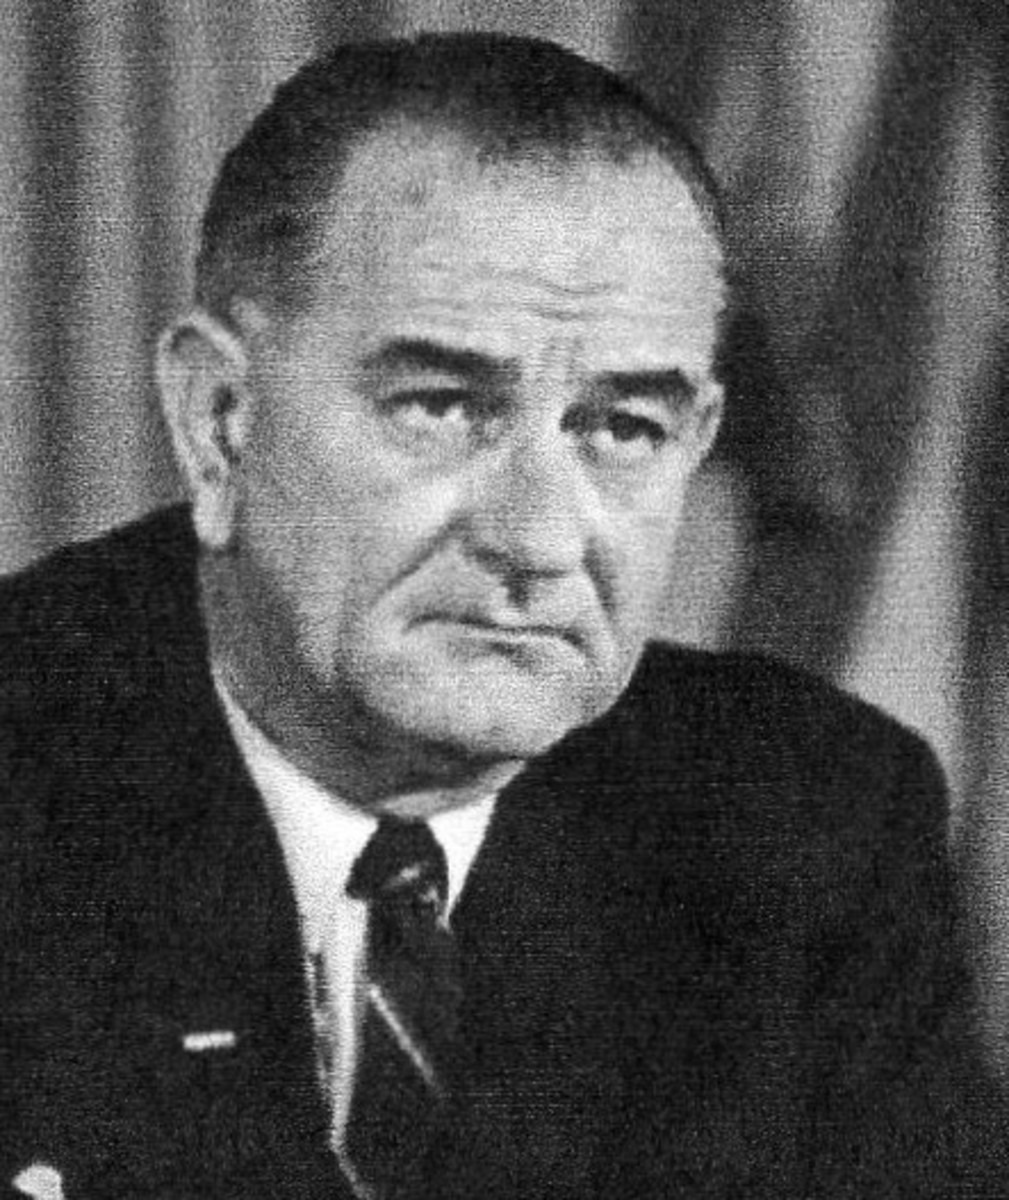 Lyndon B. Johnson, the thirty-sixth president, a Democrat from Texas, 1963-1969.